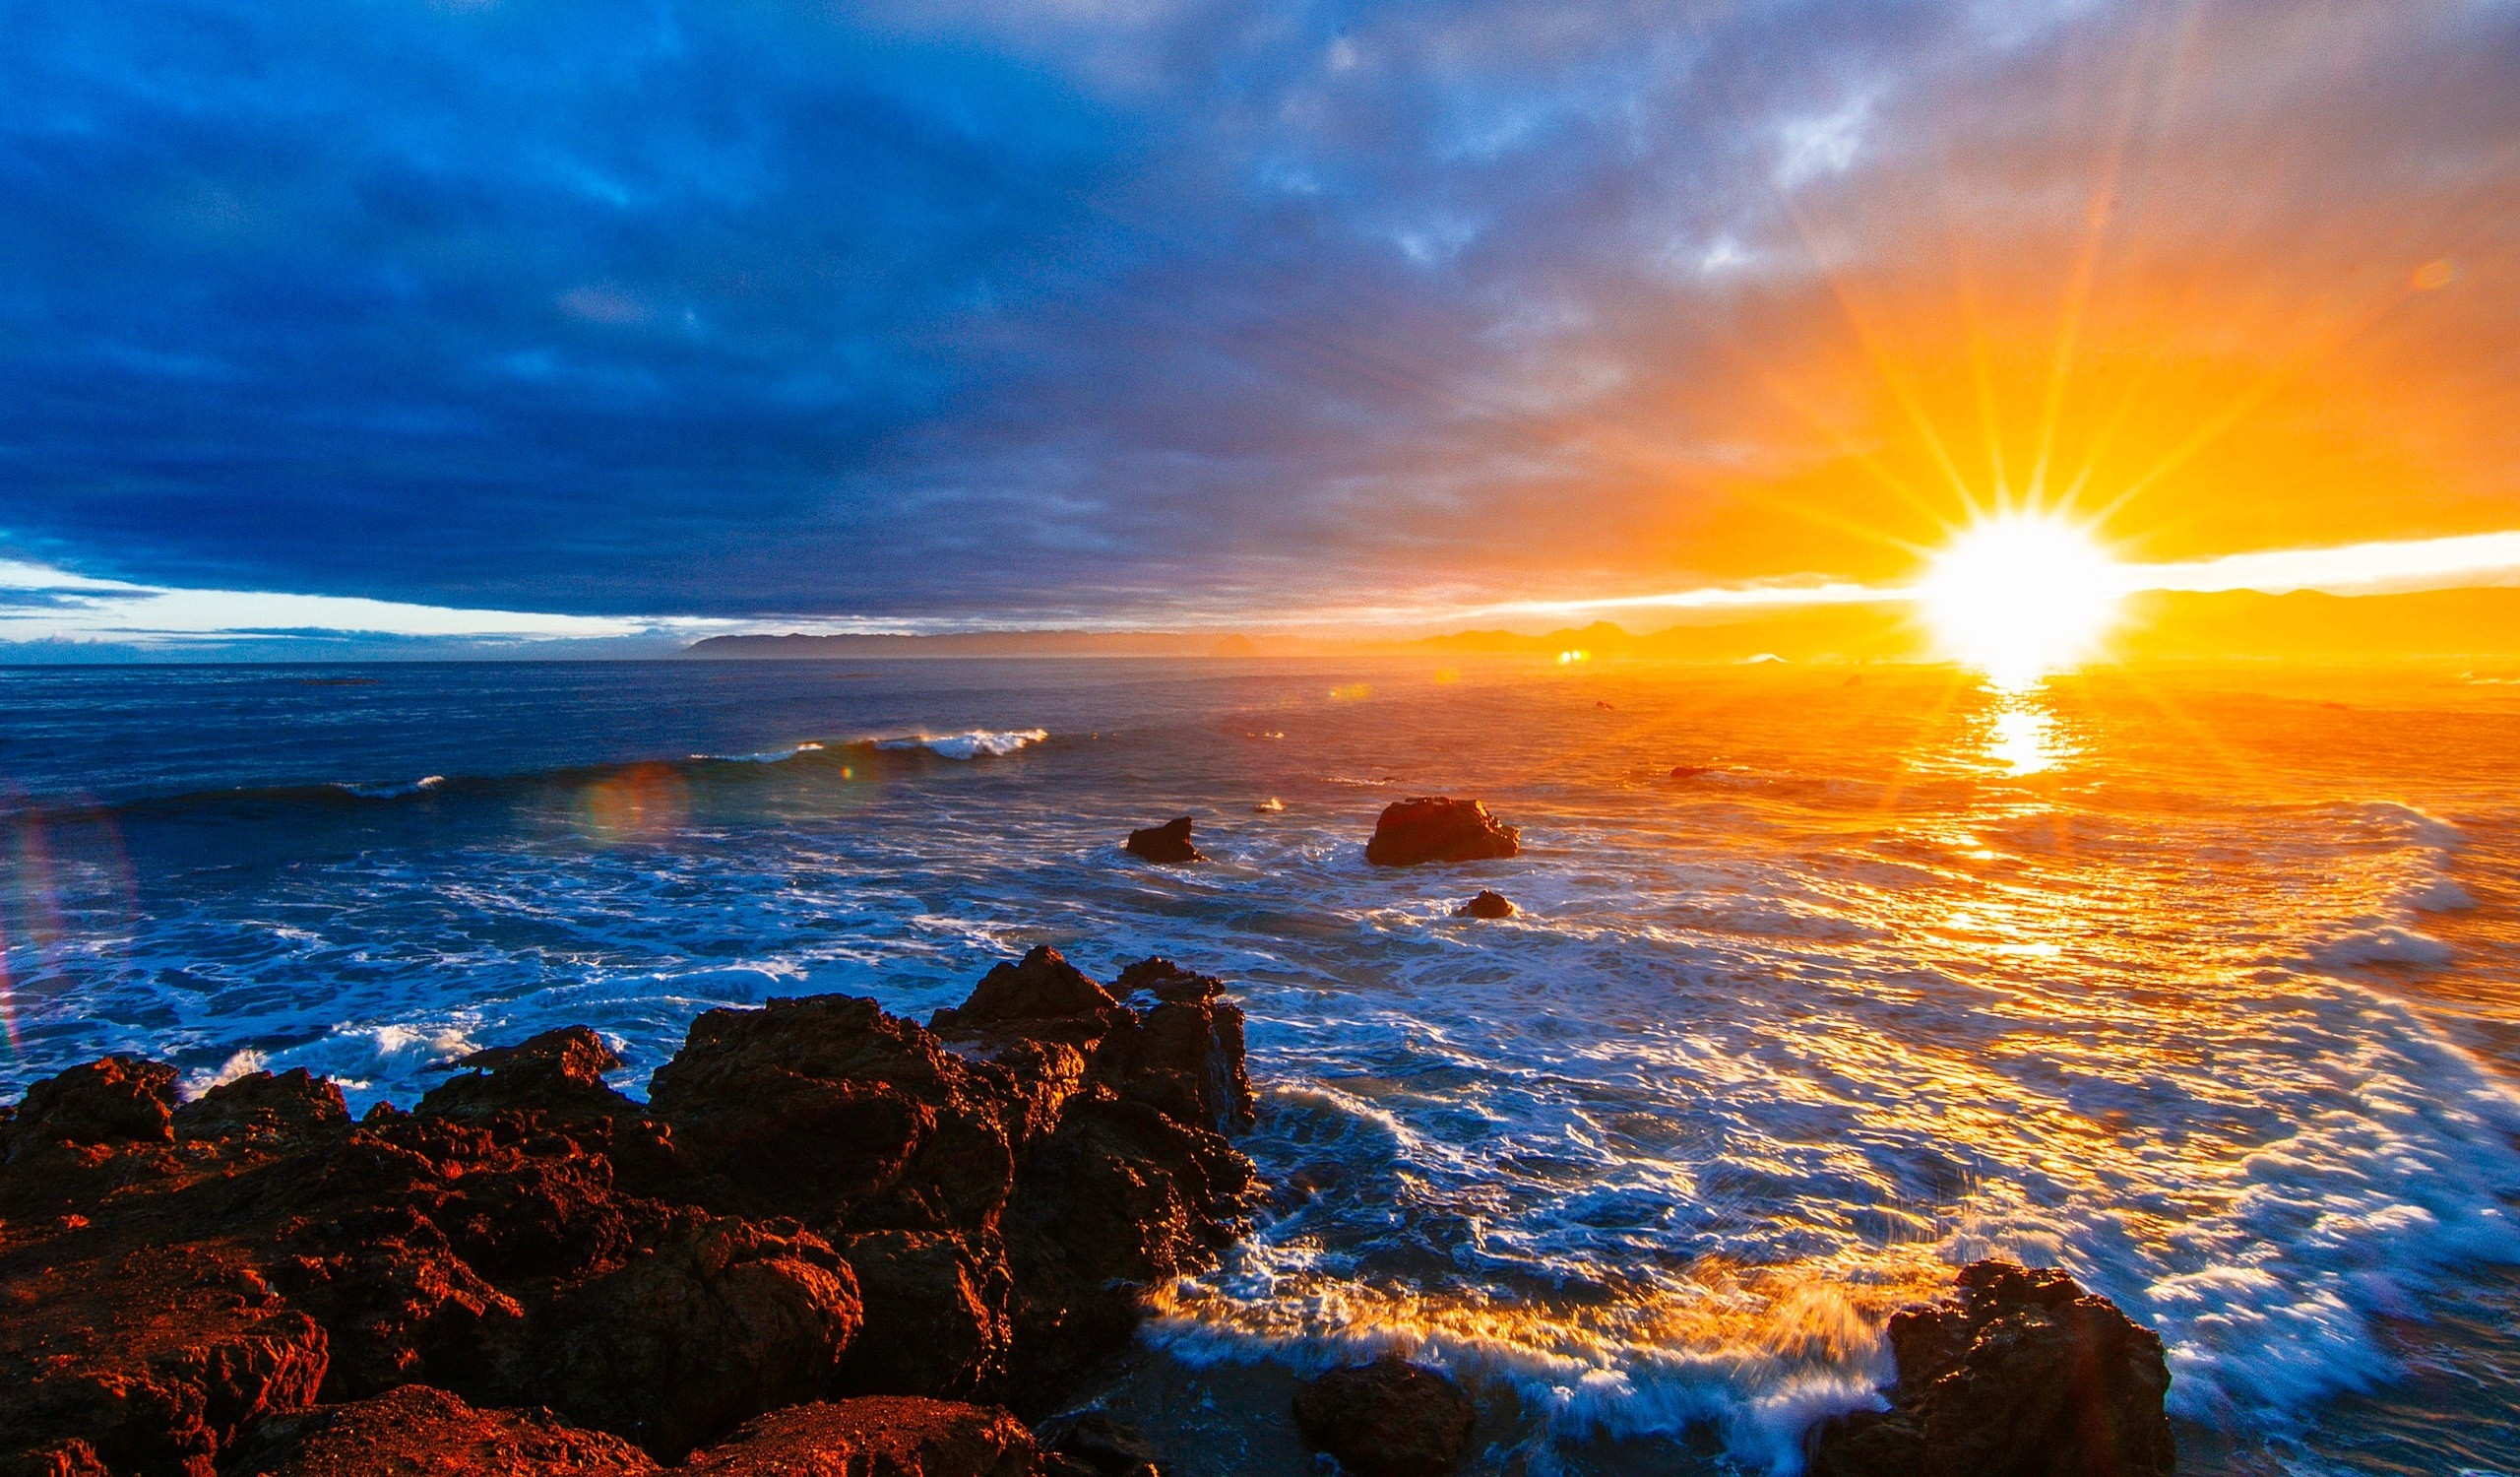 Sunsets: Ocean Shore Sea Nature Sunrise Sky Water Clouds Sunlight ...